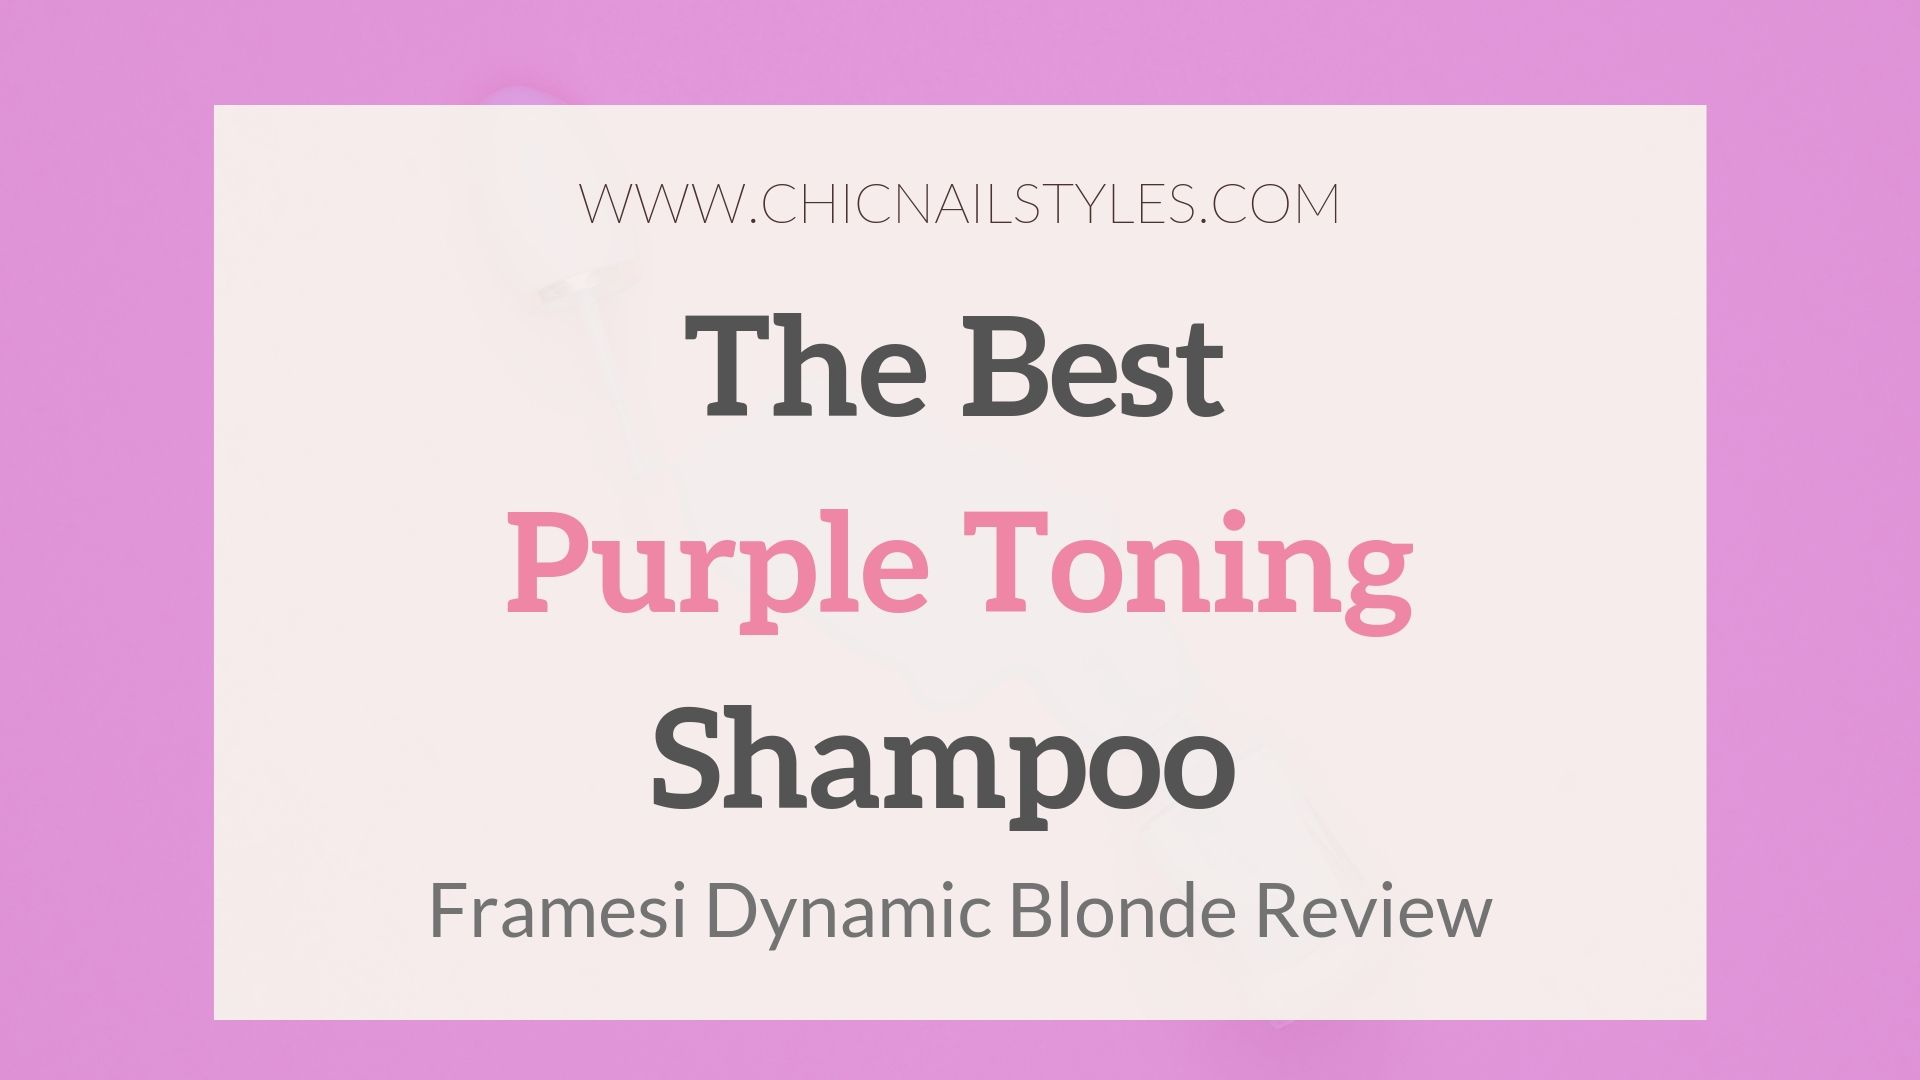 The Best Purple toning shampoo